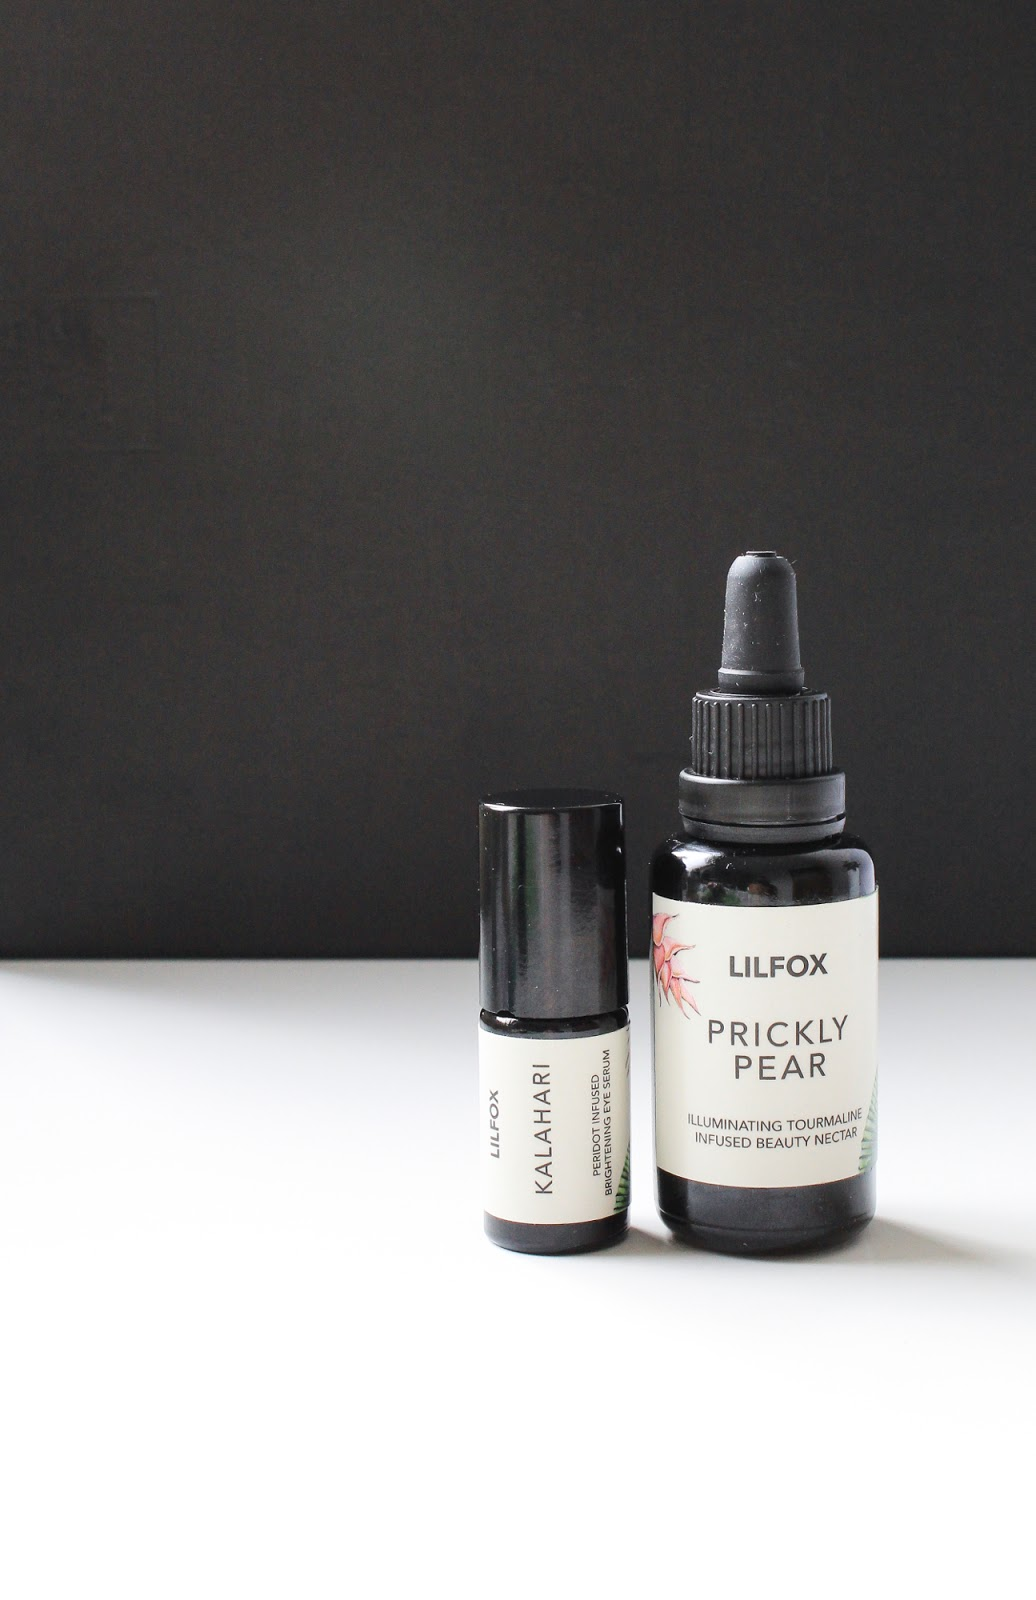 October Beauty Discovery Beauty Heroes LILFOX Prickly Pear Illuminating Beauty Nectar and Kalahari Brightening Eye Serum vegan